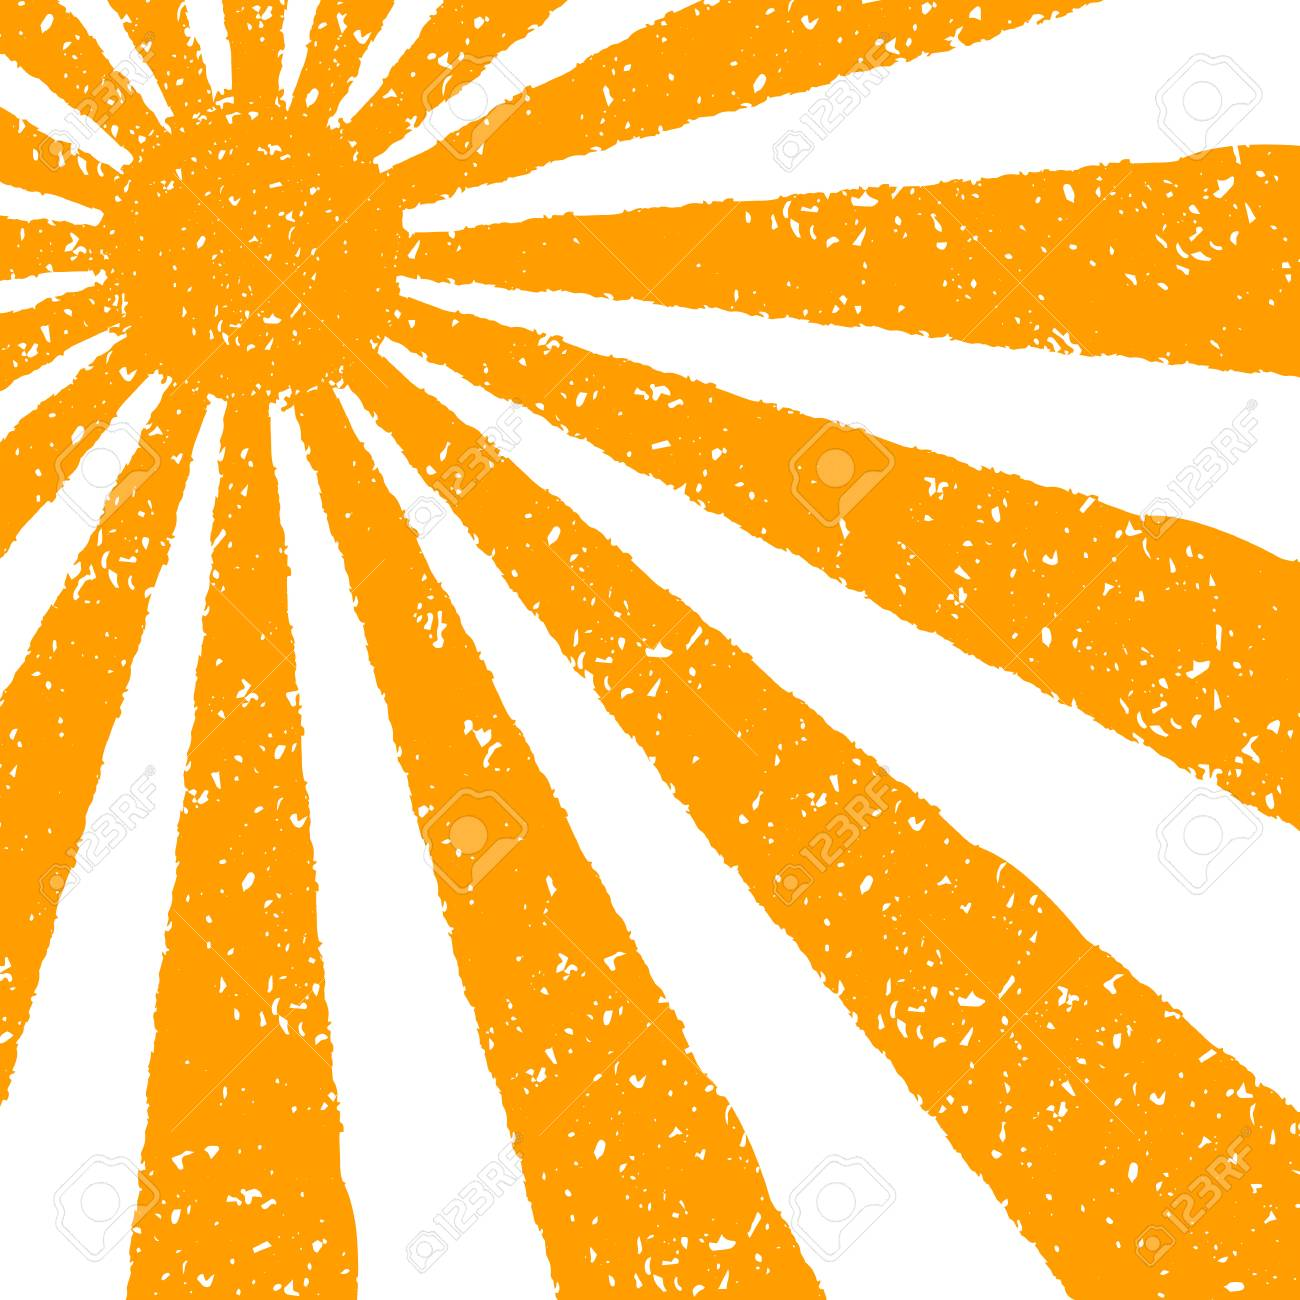 orange sun background hand painted with oil pastel crayons